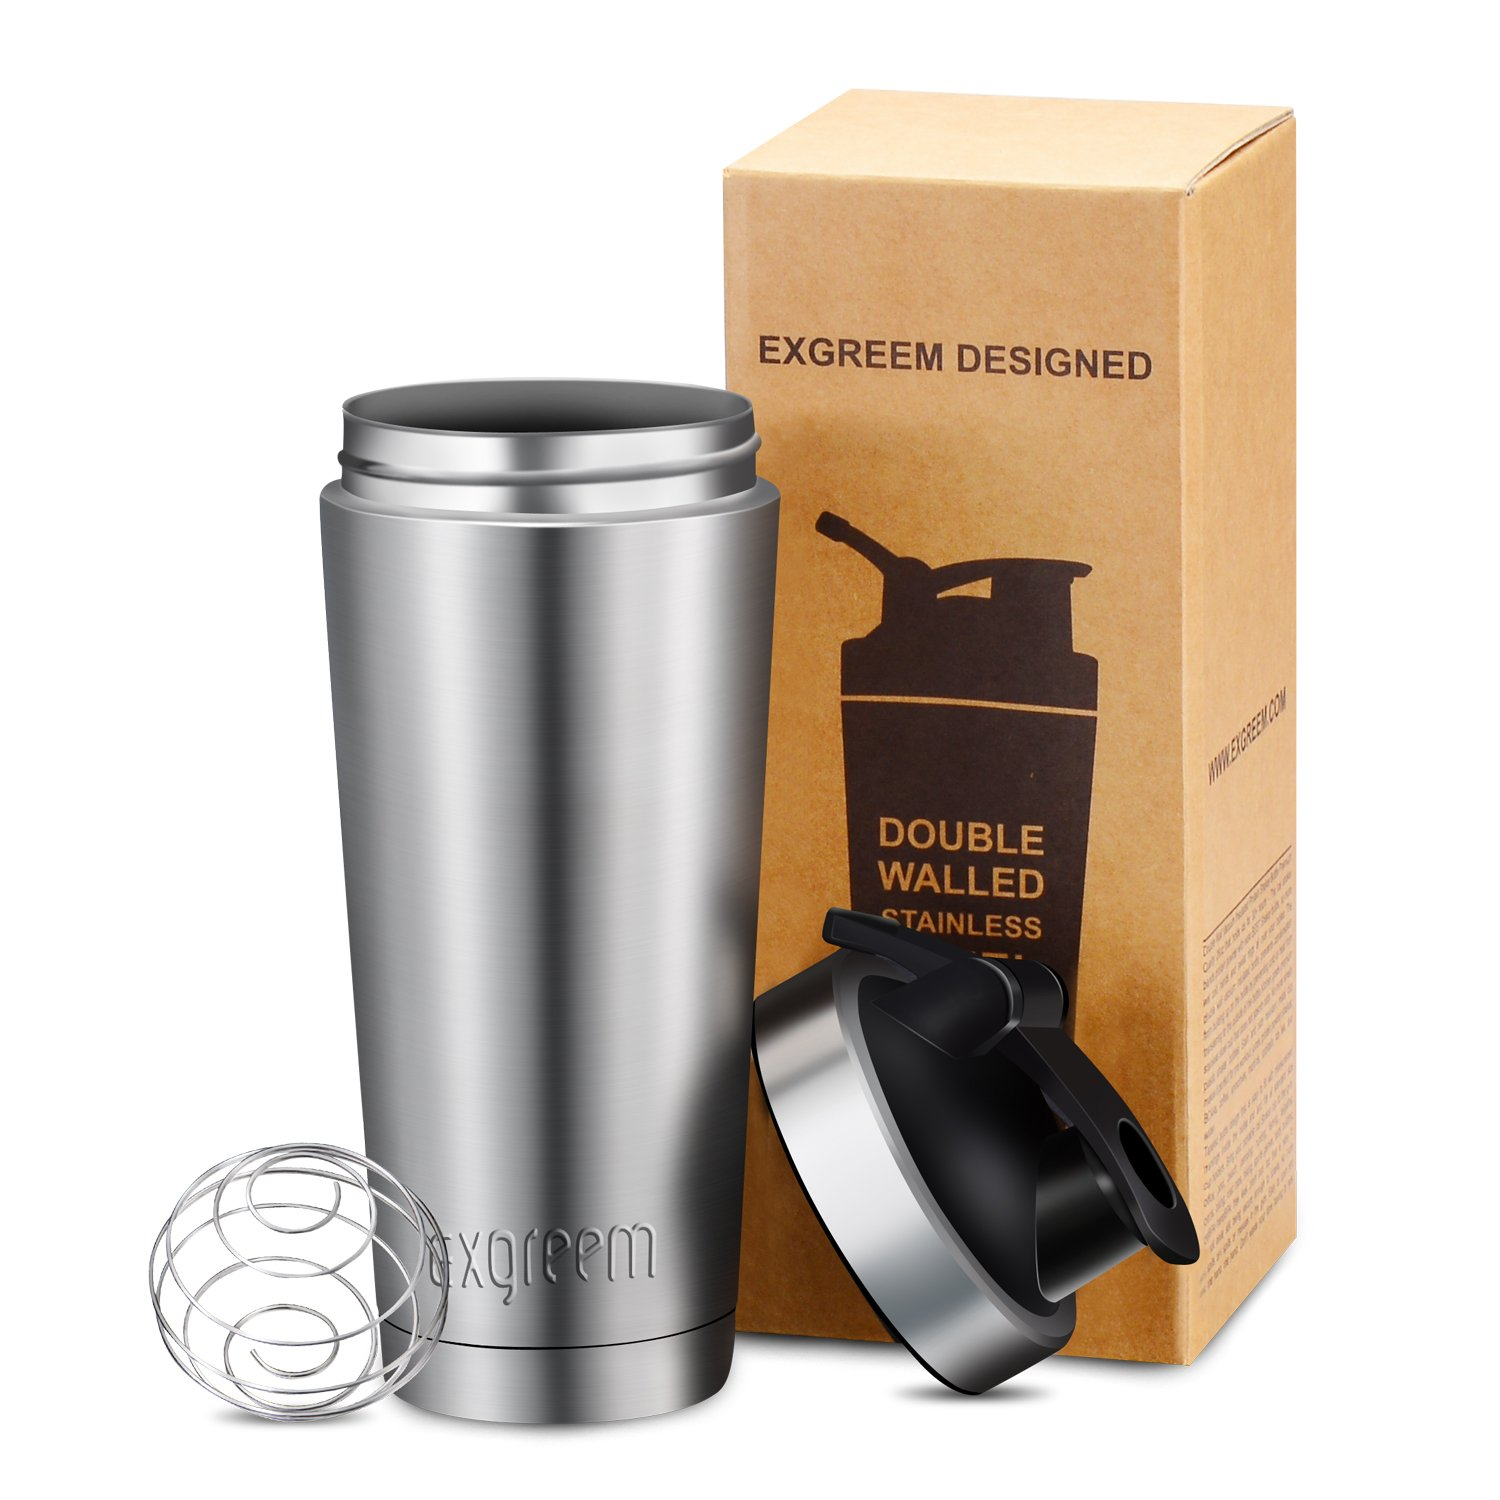 Shaker Bottle Exgreem 26oz Top Stainless Steel Insulated Water Bottle Protein Mixing cup - Holds Ice for more 30+ Hours (26 oz)